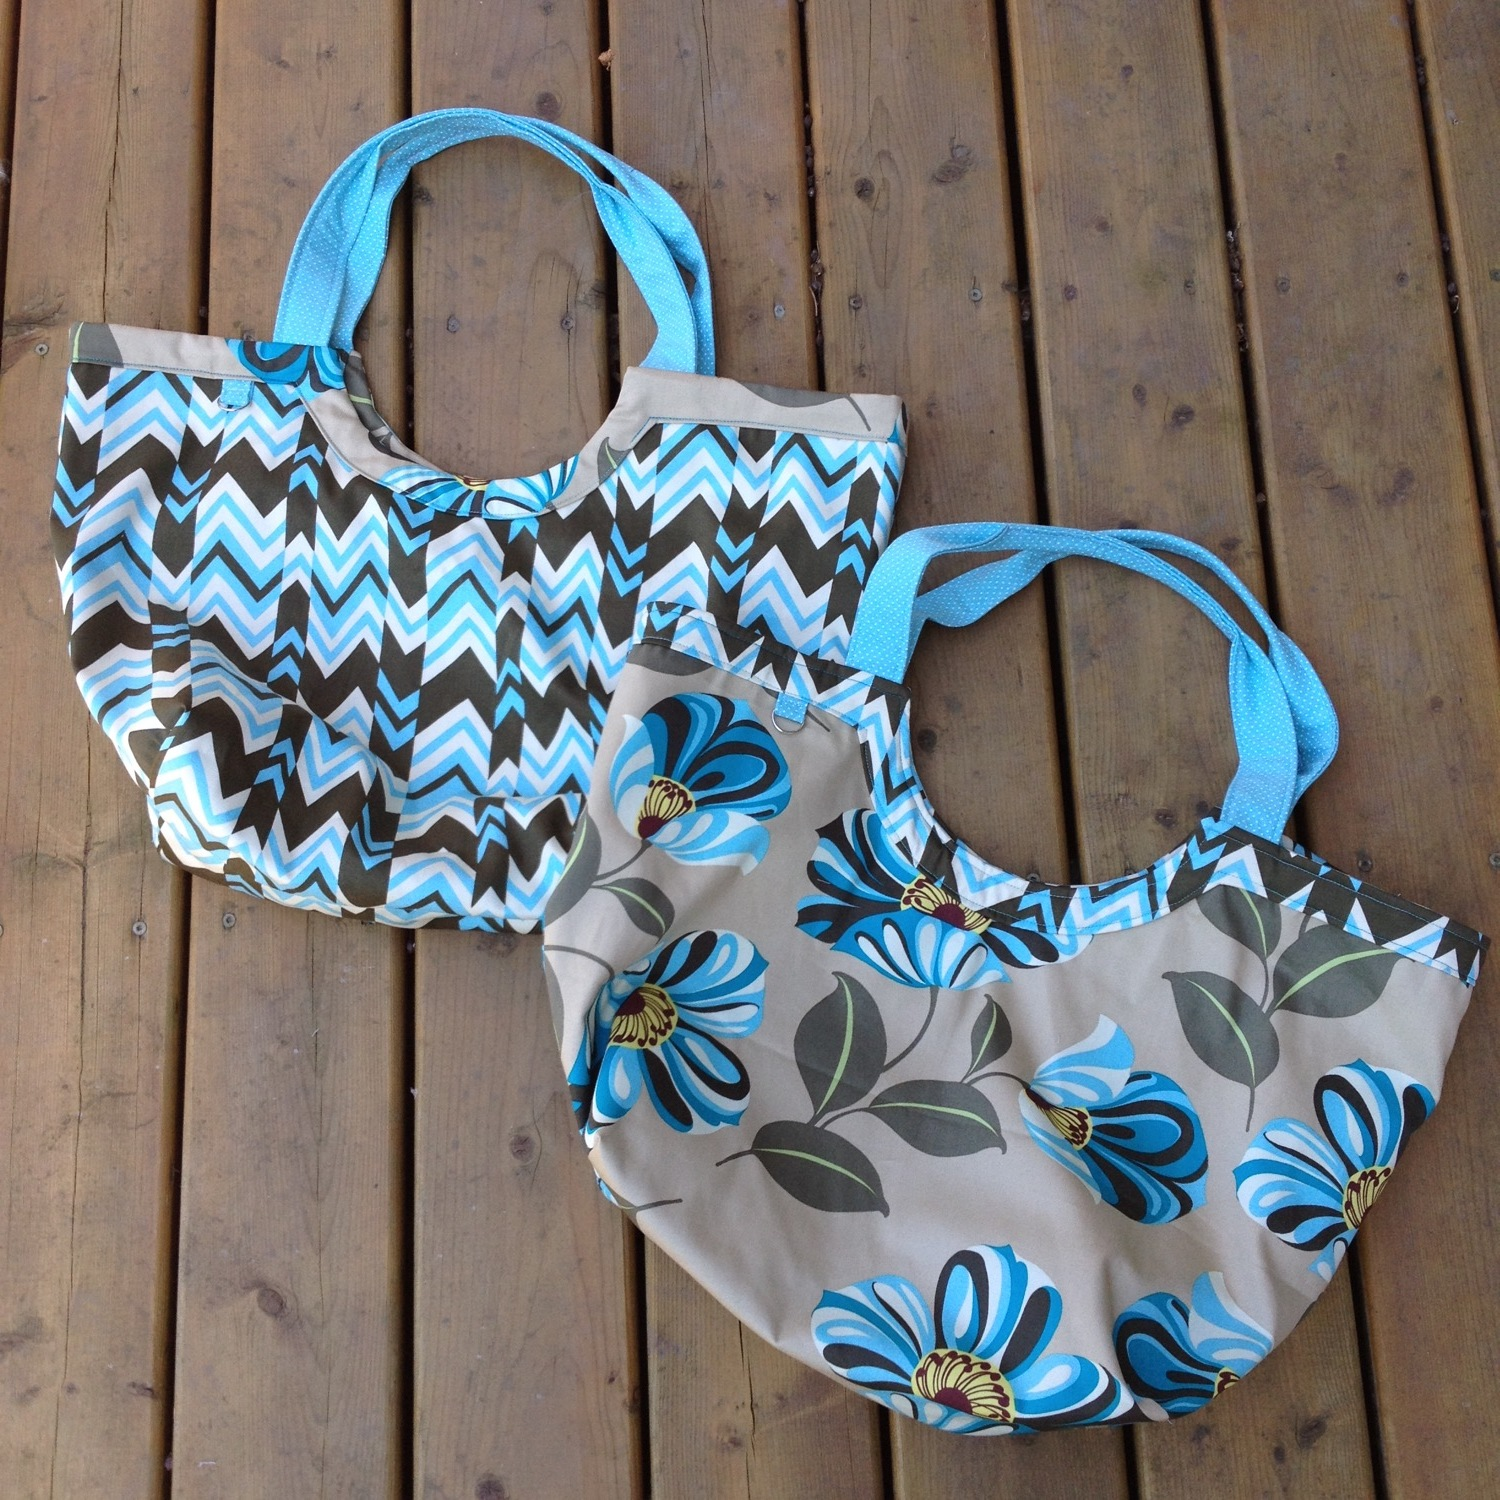 First 2 Poolside Totes